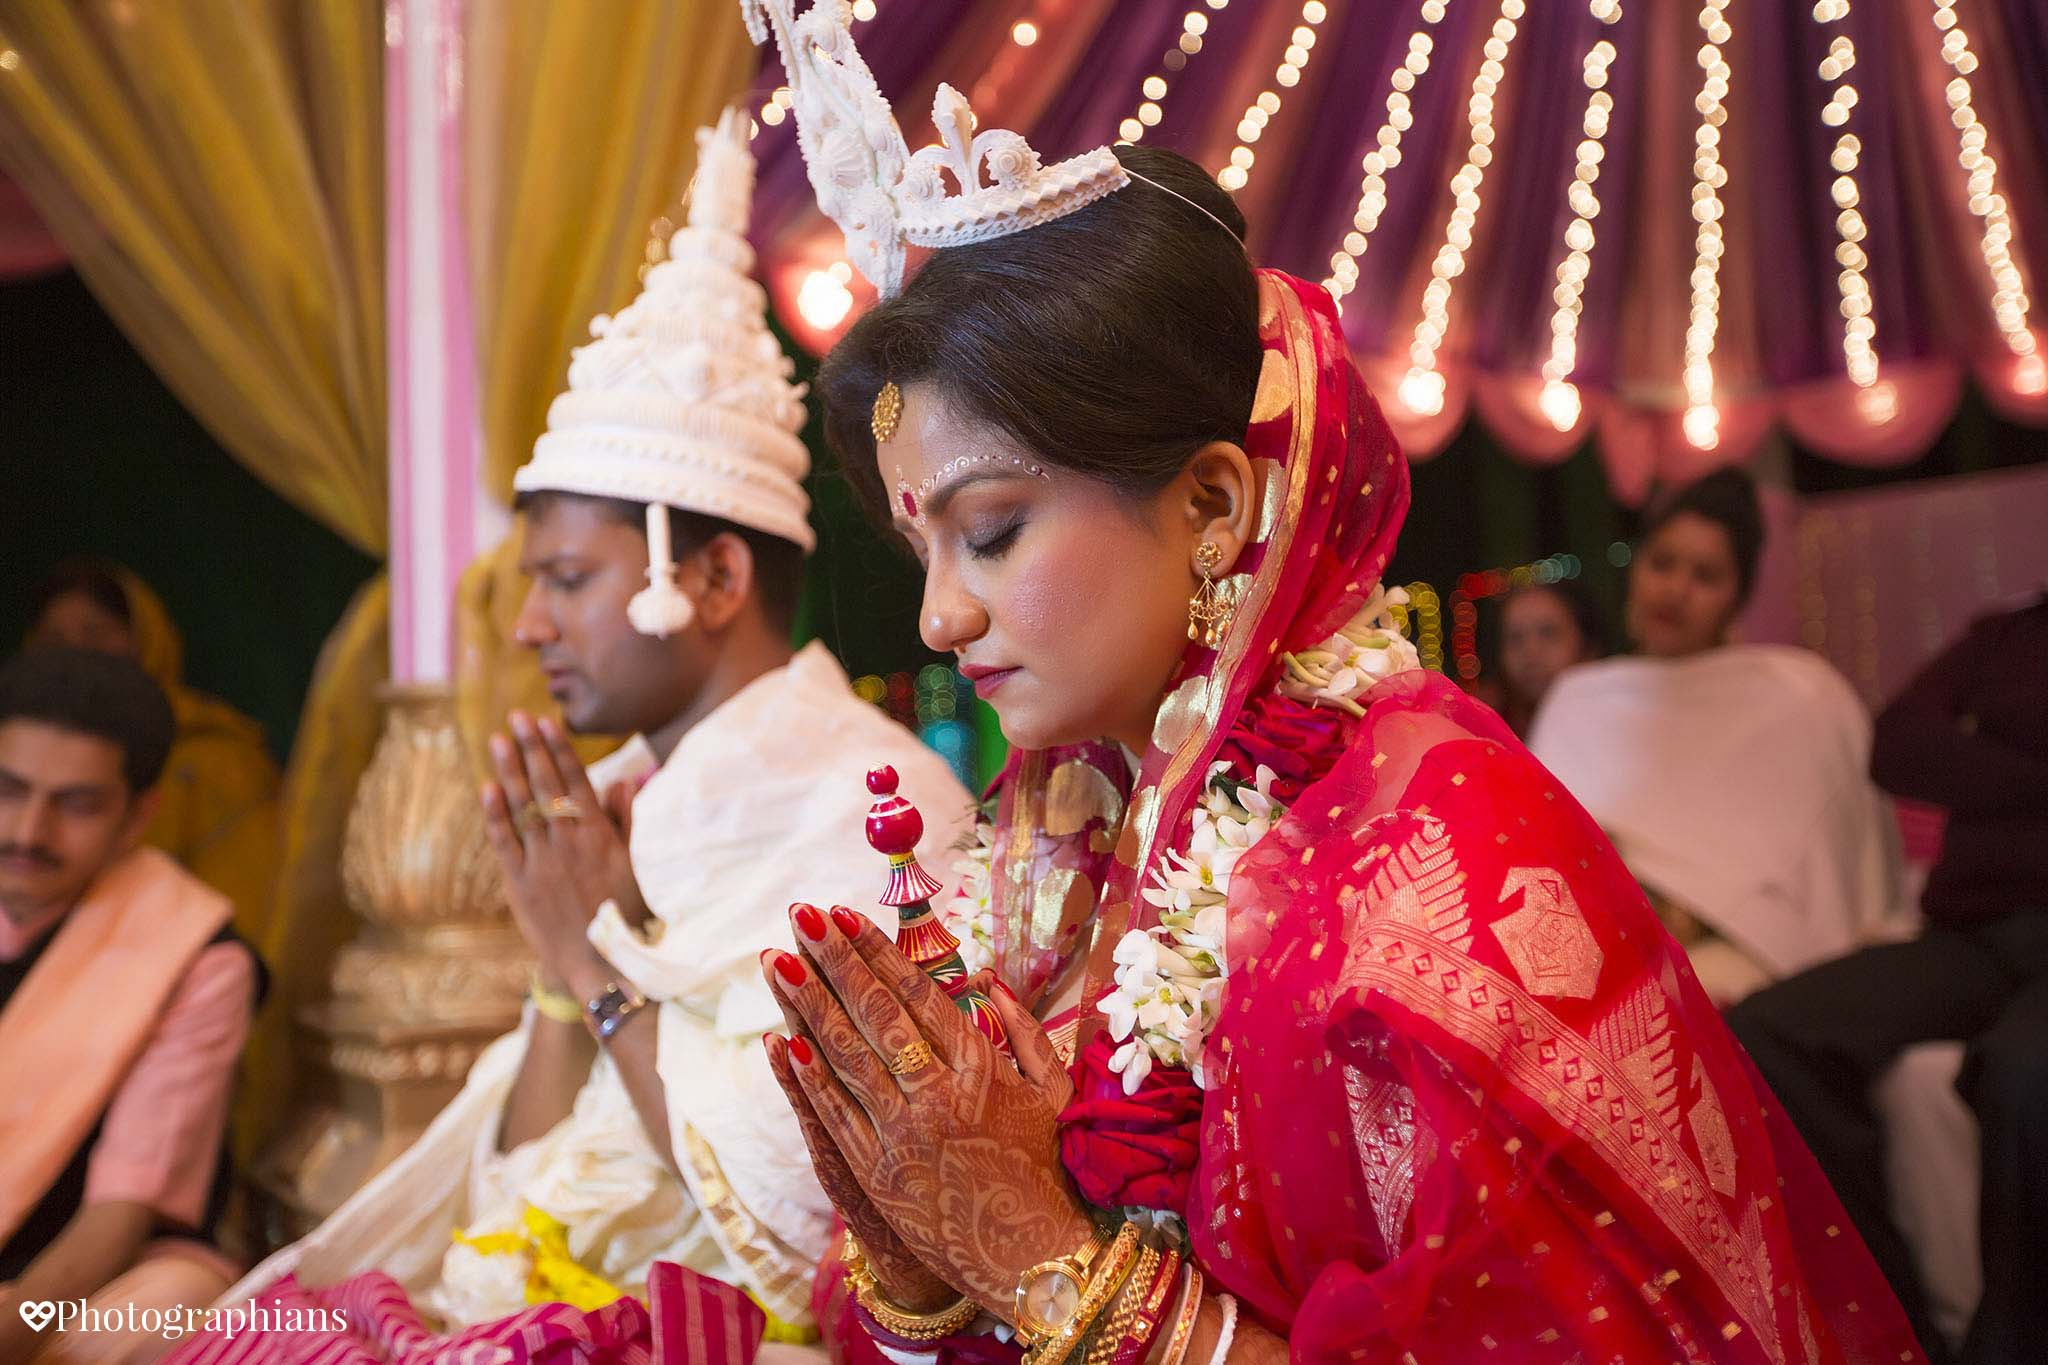 Photographians_Indian_Destination_Wedding_233